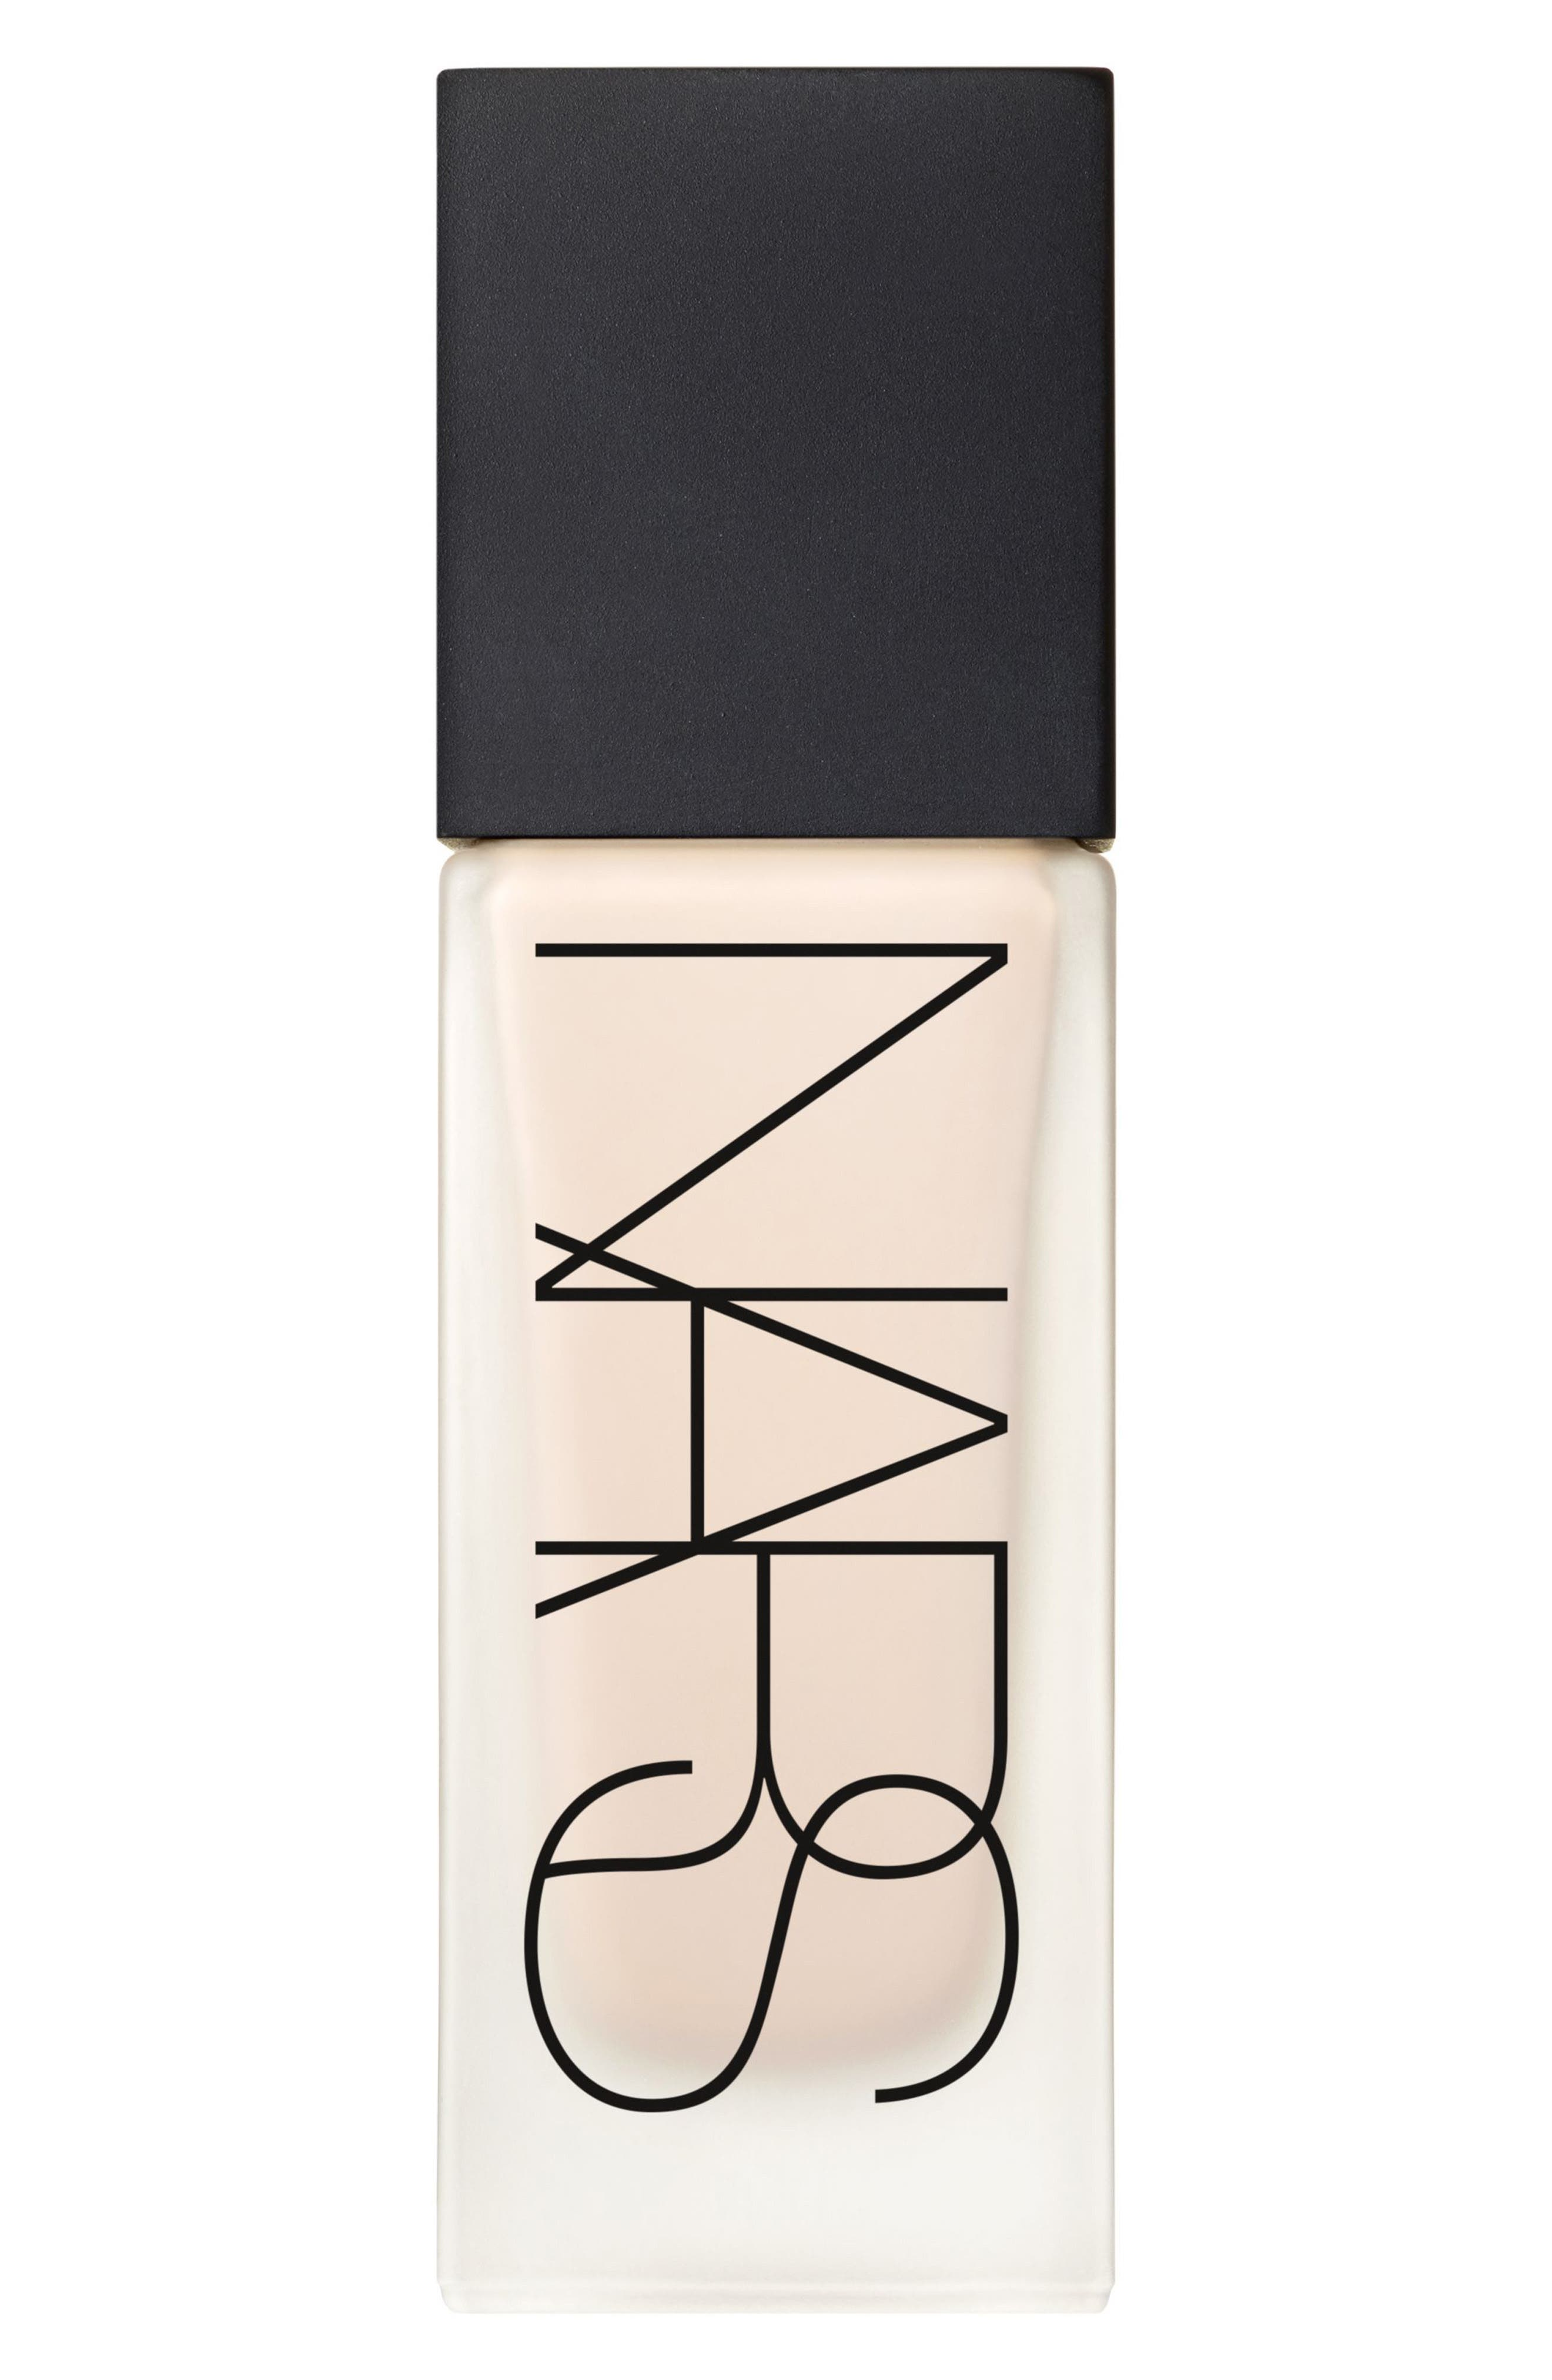 All Day Luminous Weightless Liquid Foundation,                             Main thumbnail 1, color,                             MONT BLANC